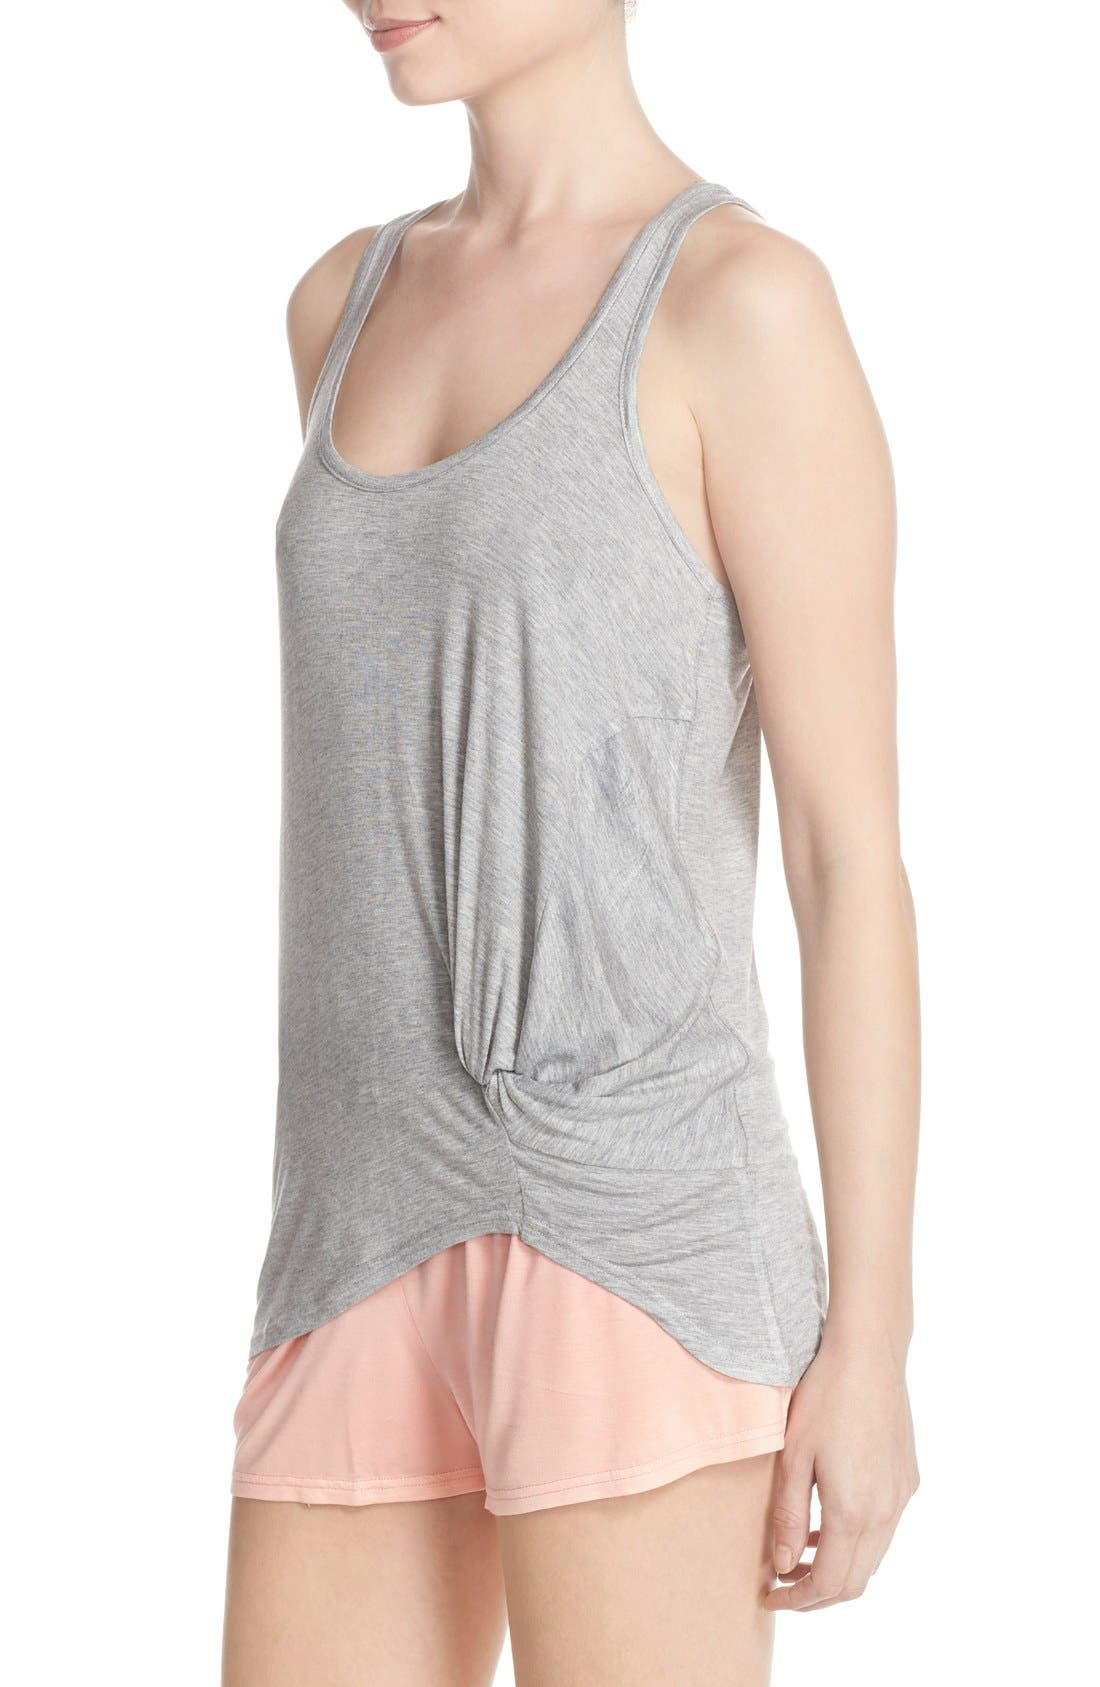 Knotted Tank & Pajama Shorts,                             Alternate thumbnail 3, color,                             Light Grey/ Peach